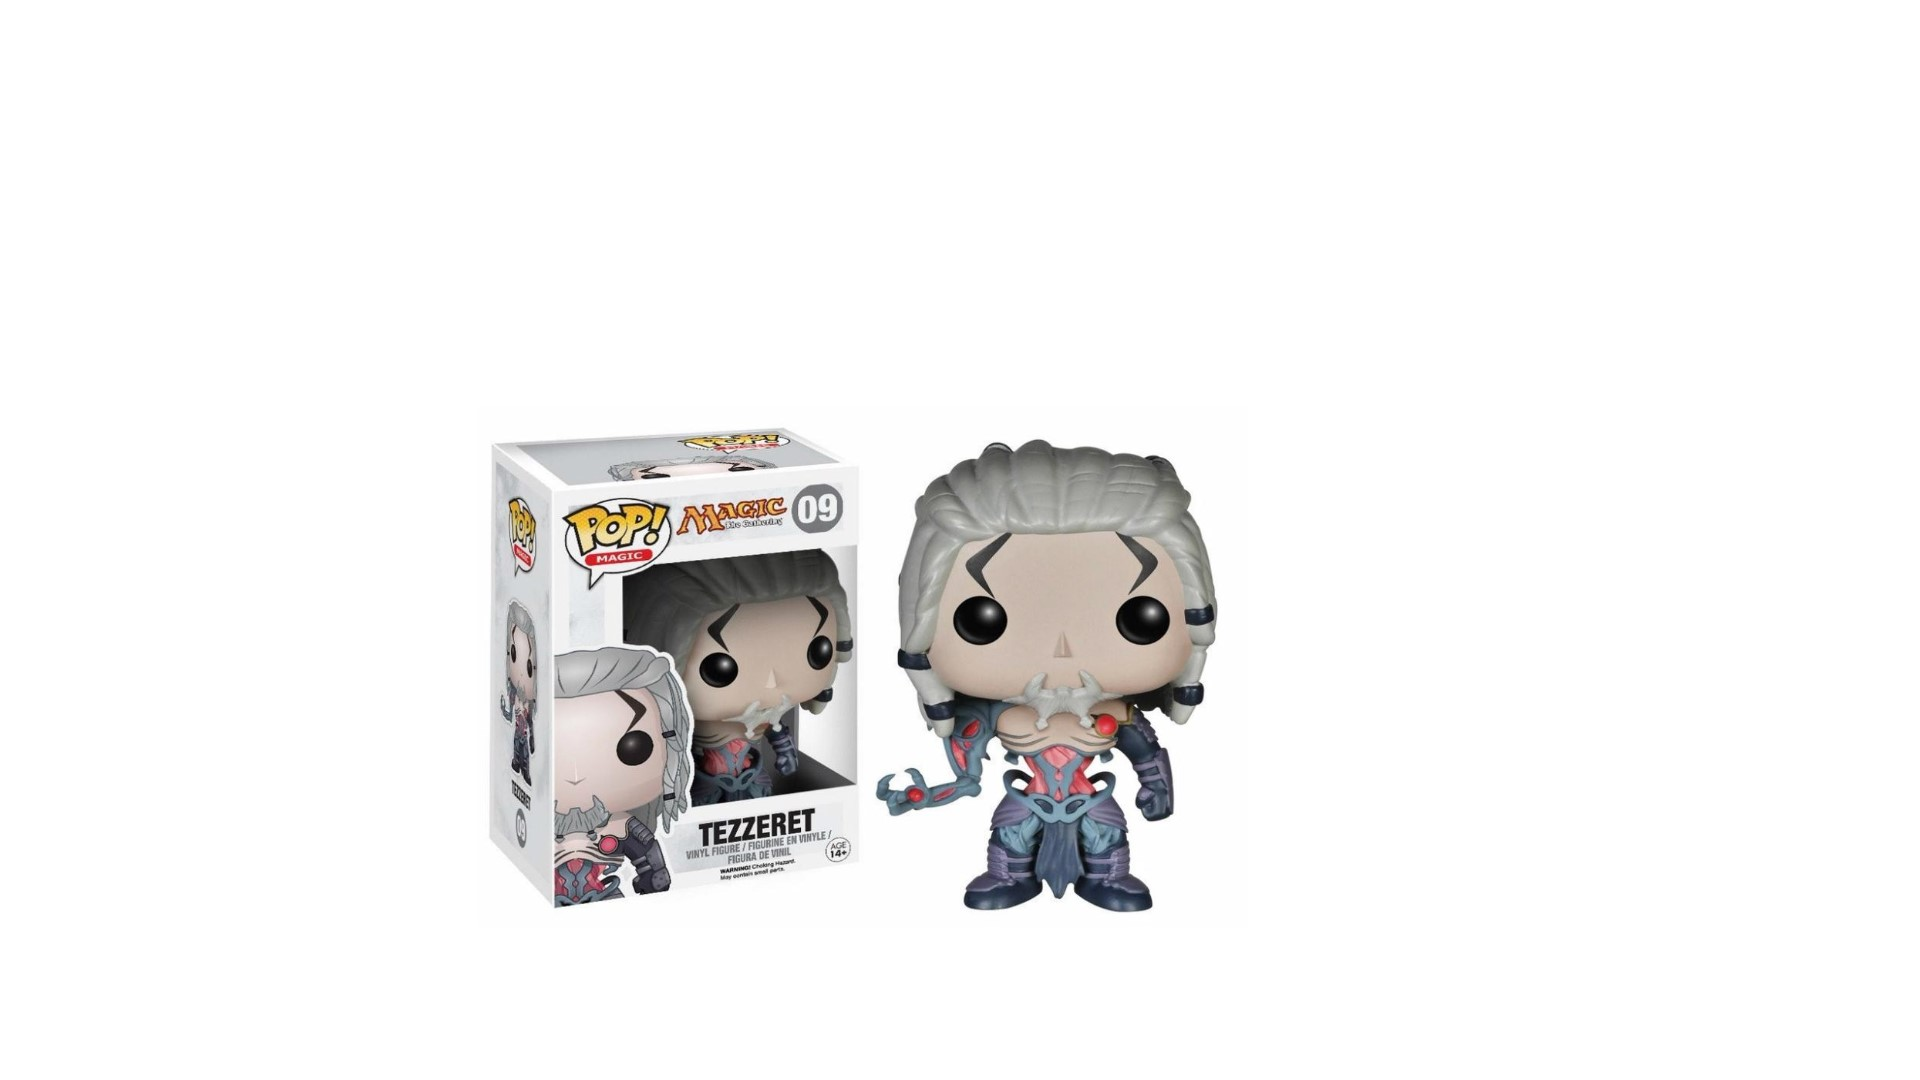 Magic The Gathering Tezzeret POP Vinyl Figure 09